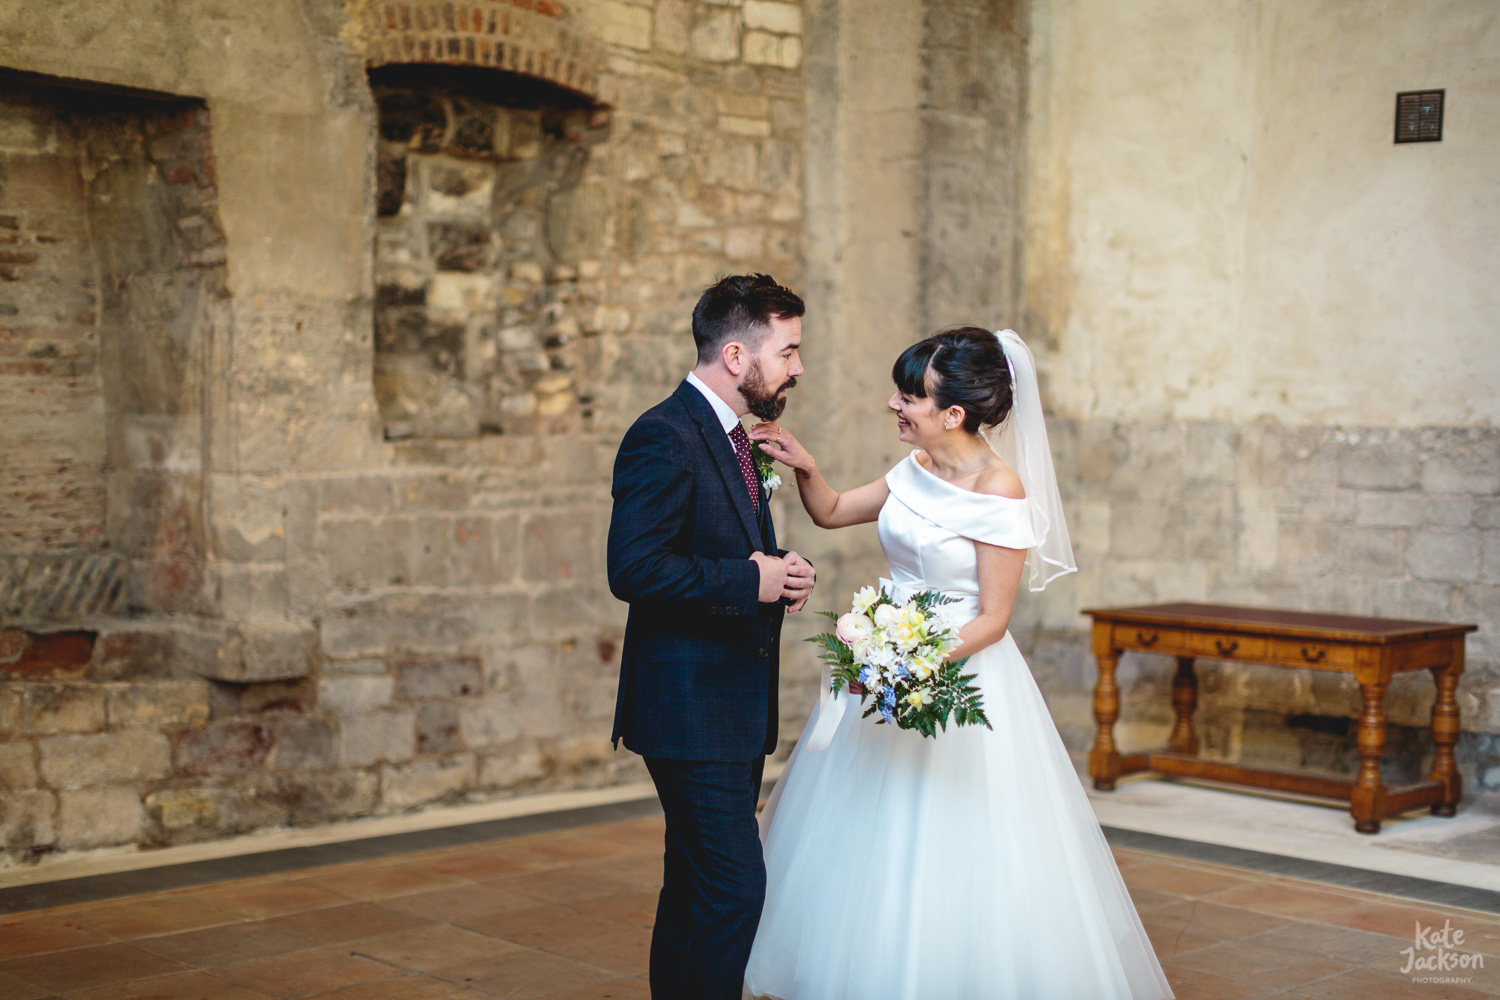 Natural couple wedding photos at Blackfrairs Priory Gloucester